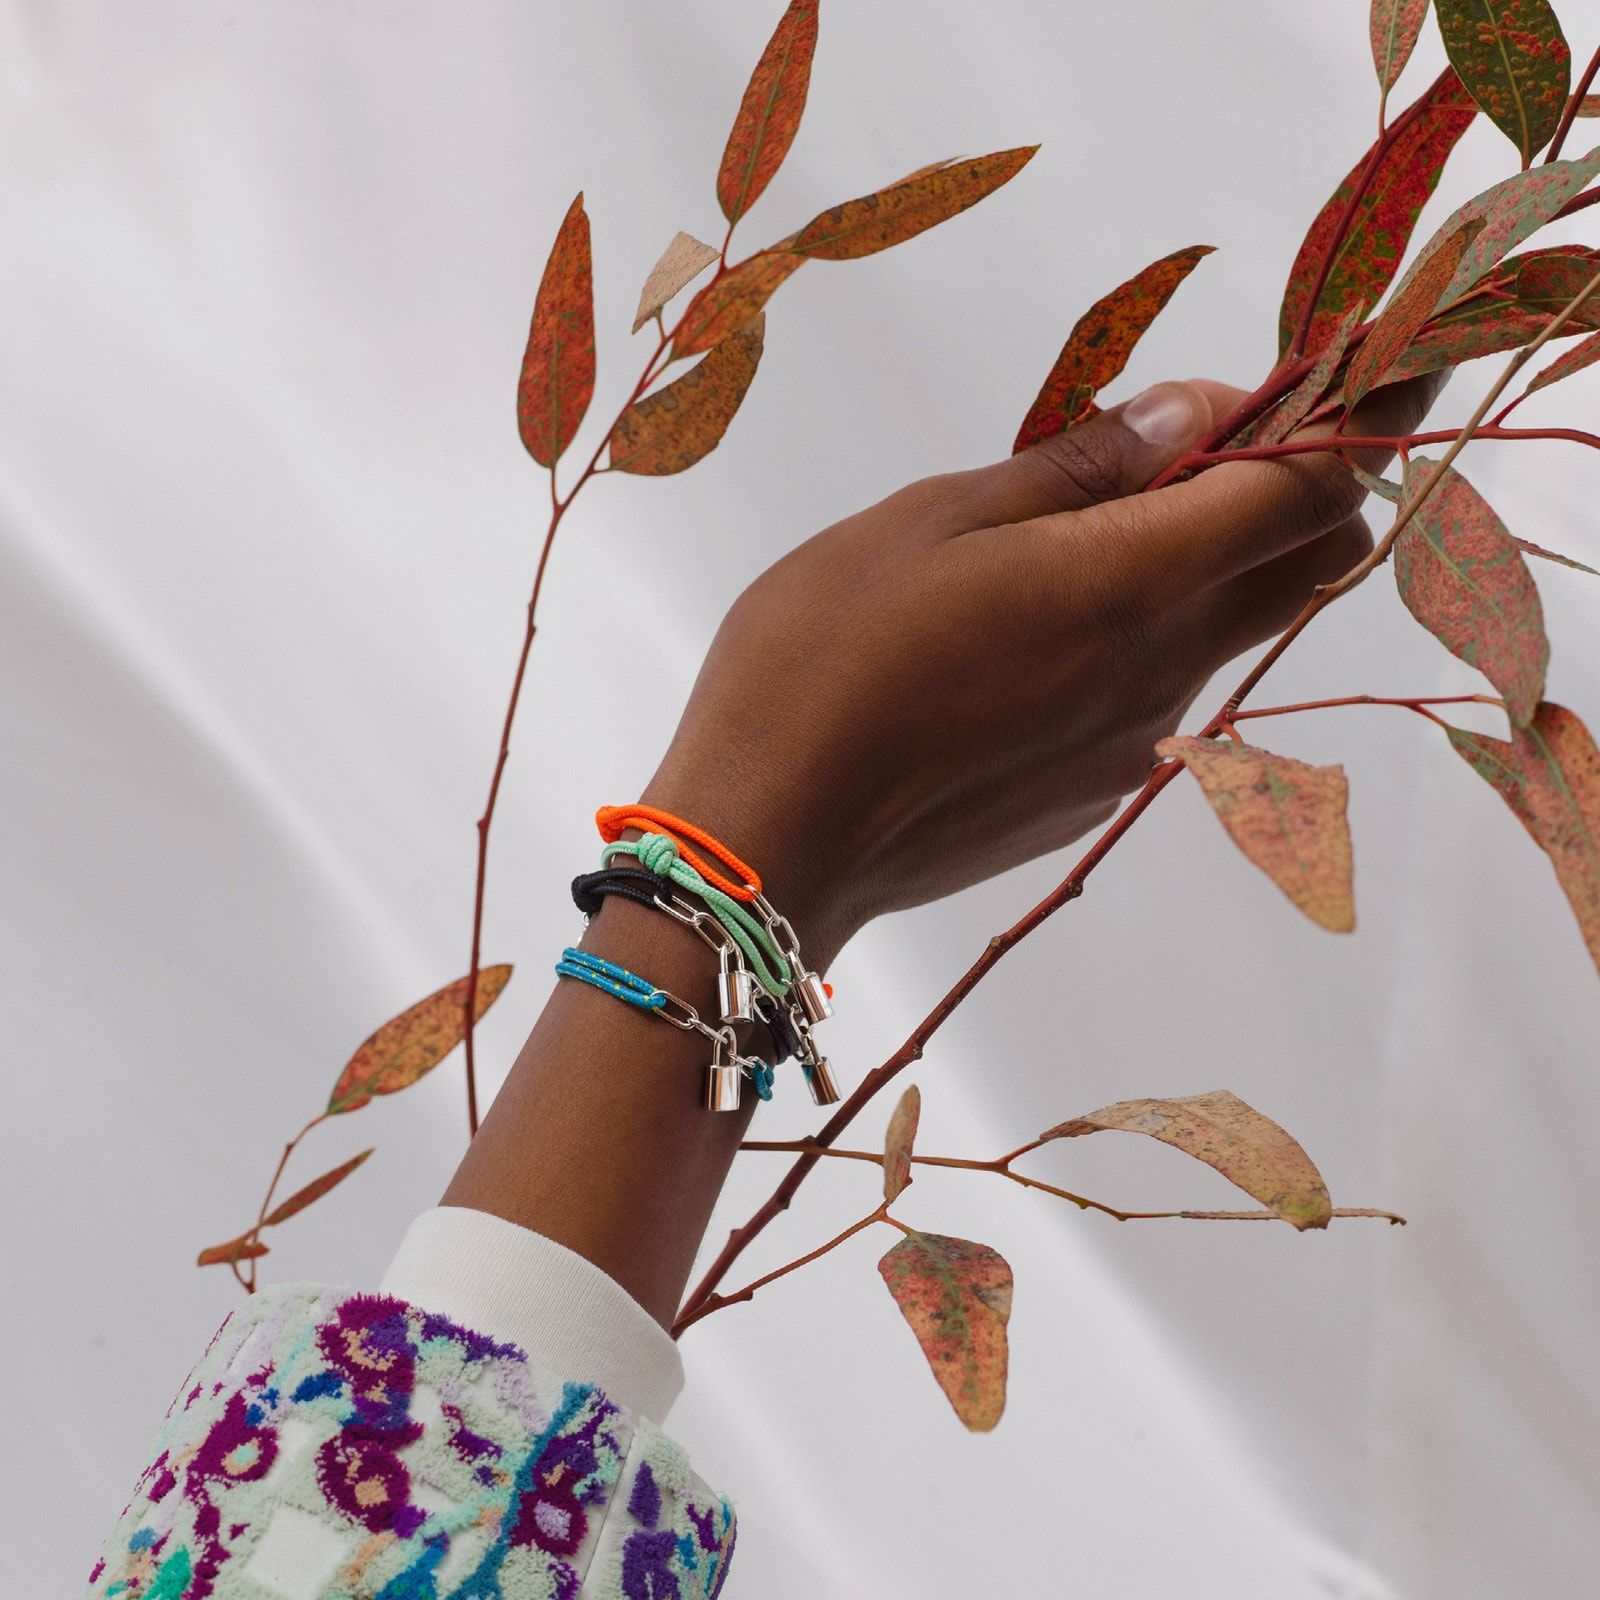 This New Luxury Bracelet Design Will Help To Raise Funds For UNICEF